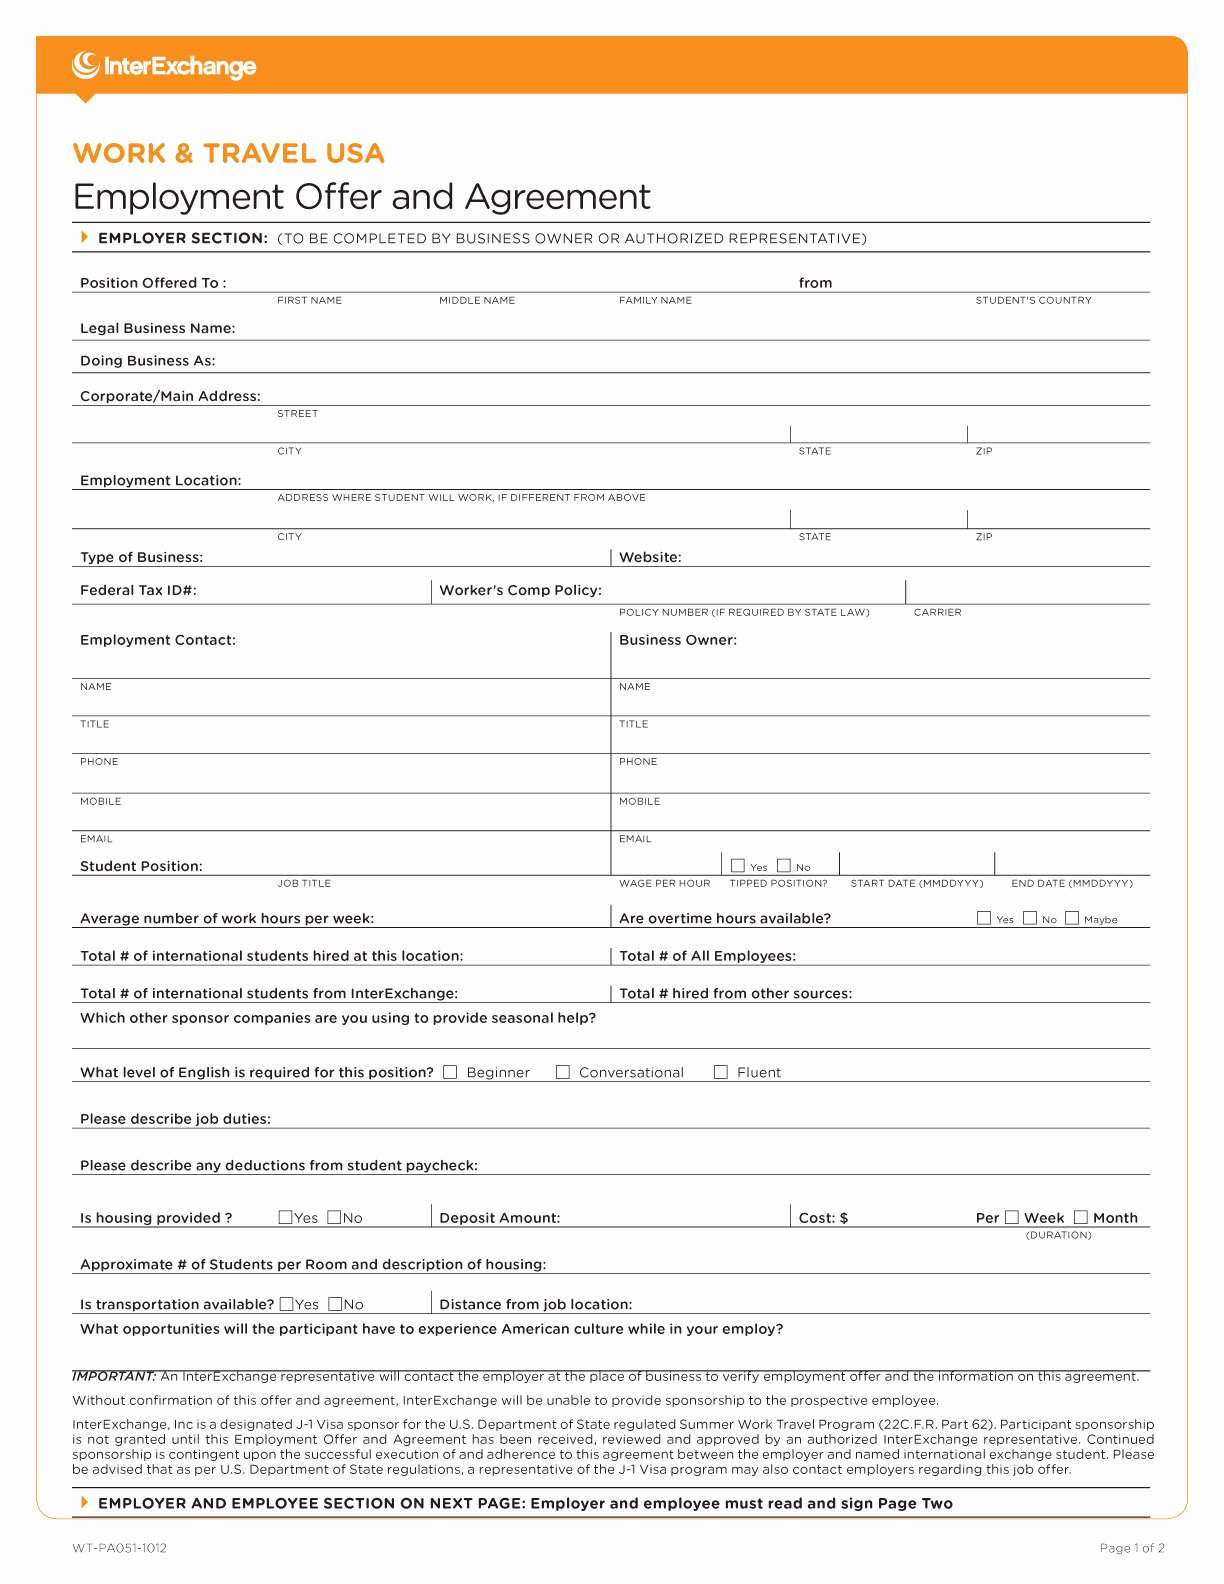 Sample Job Application form Awesome Sample forms · Work & Travel Usa · Interexchange